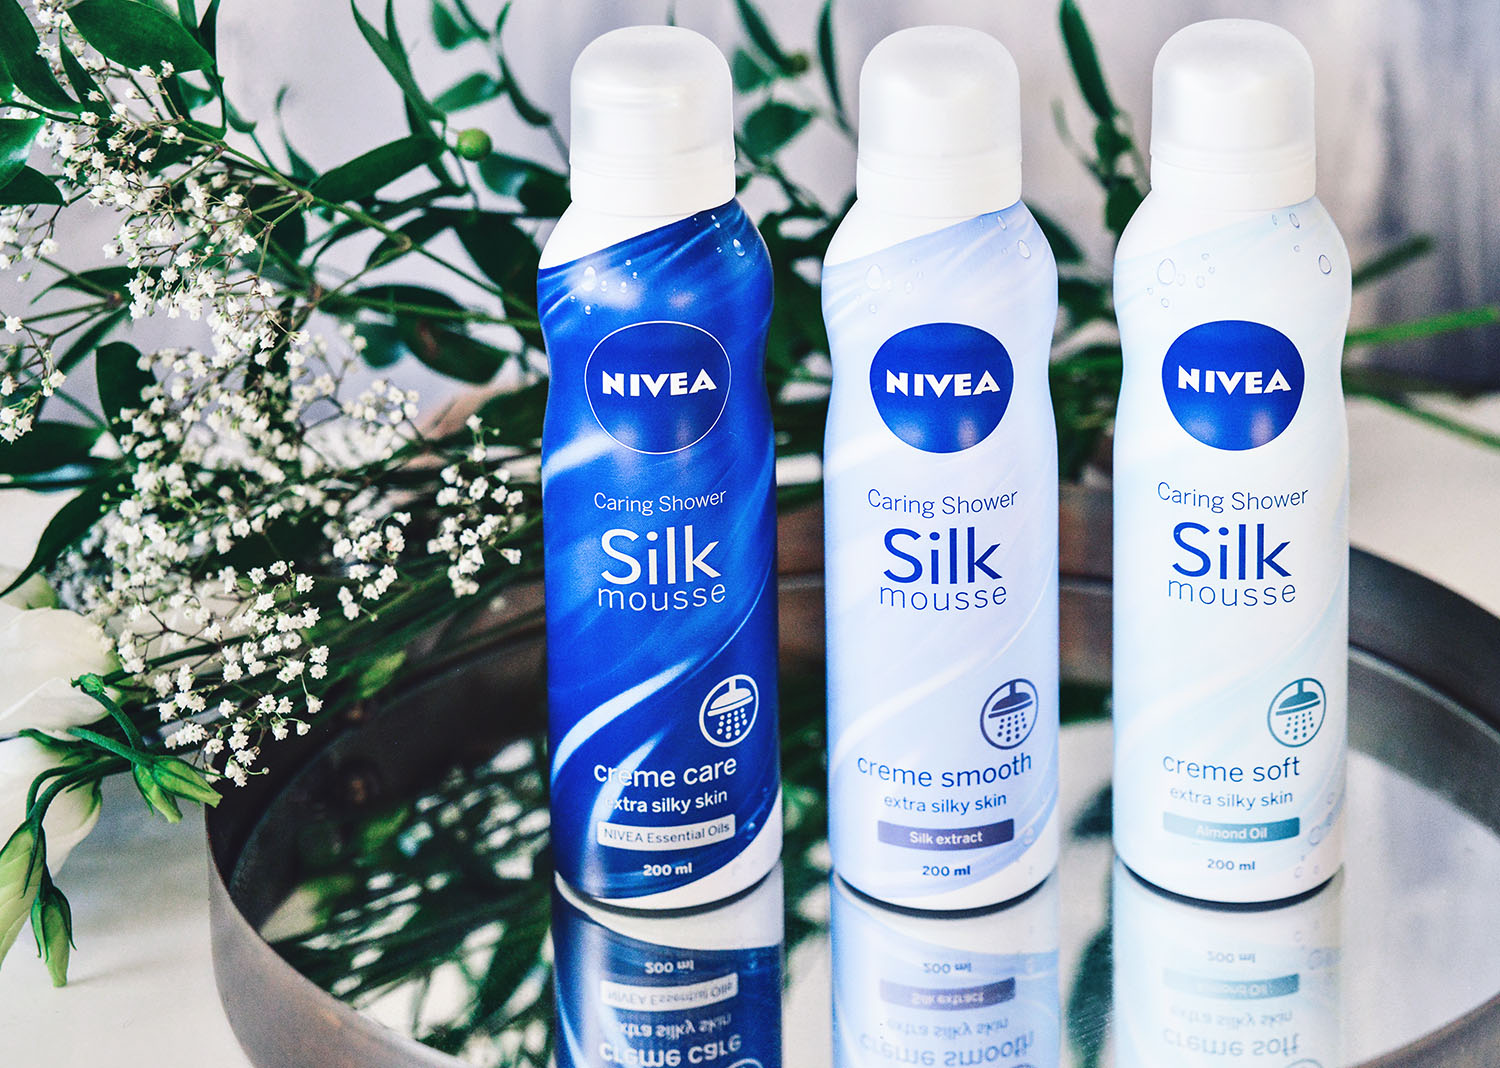 Nivea Caring Shower Silk Mousse